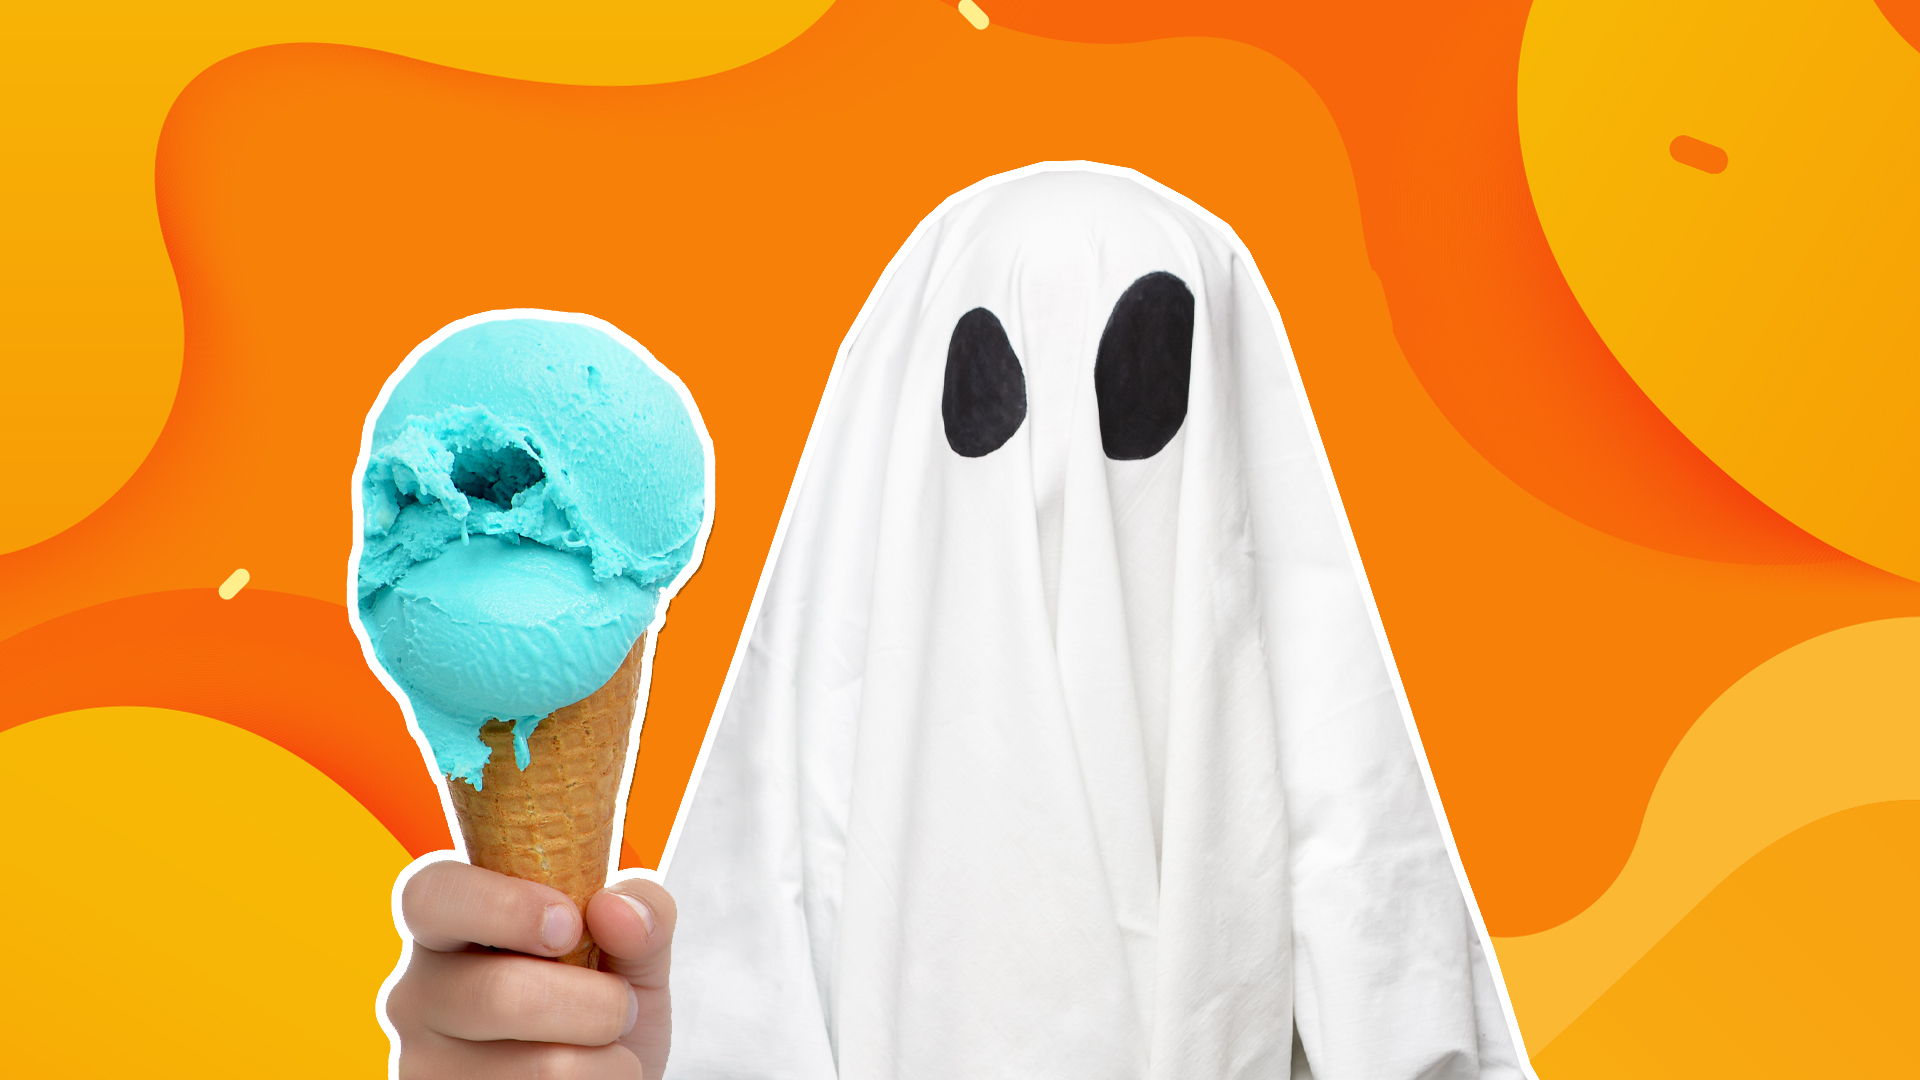 A ghost holding an ice cream